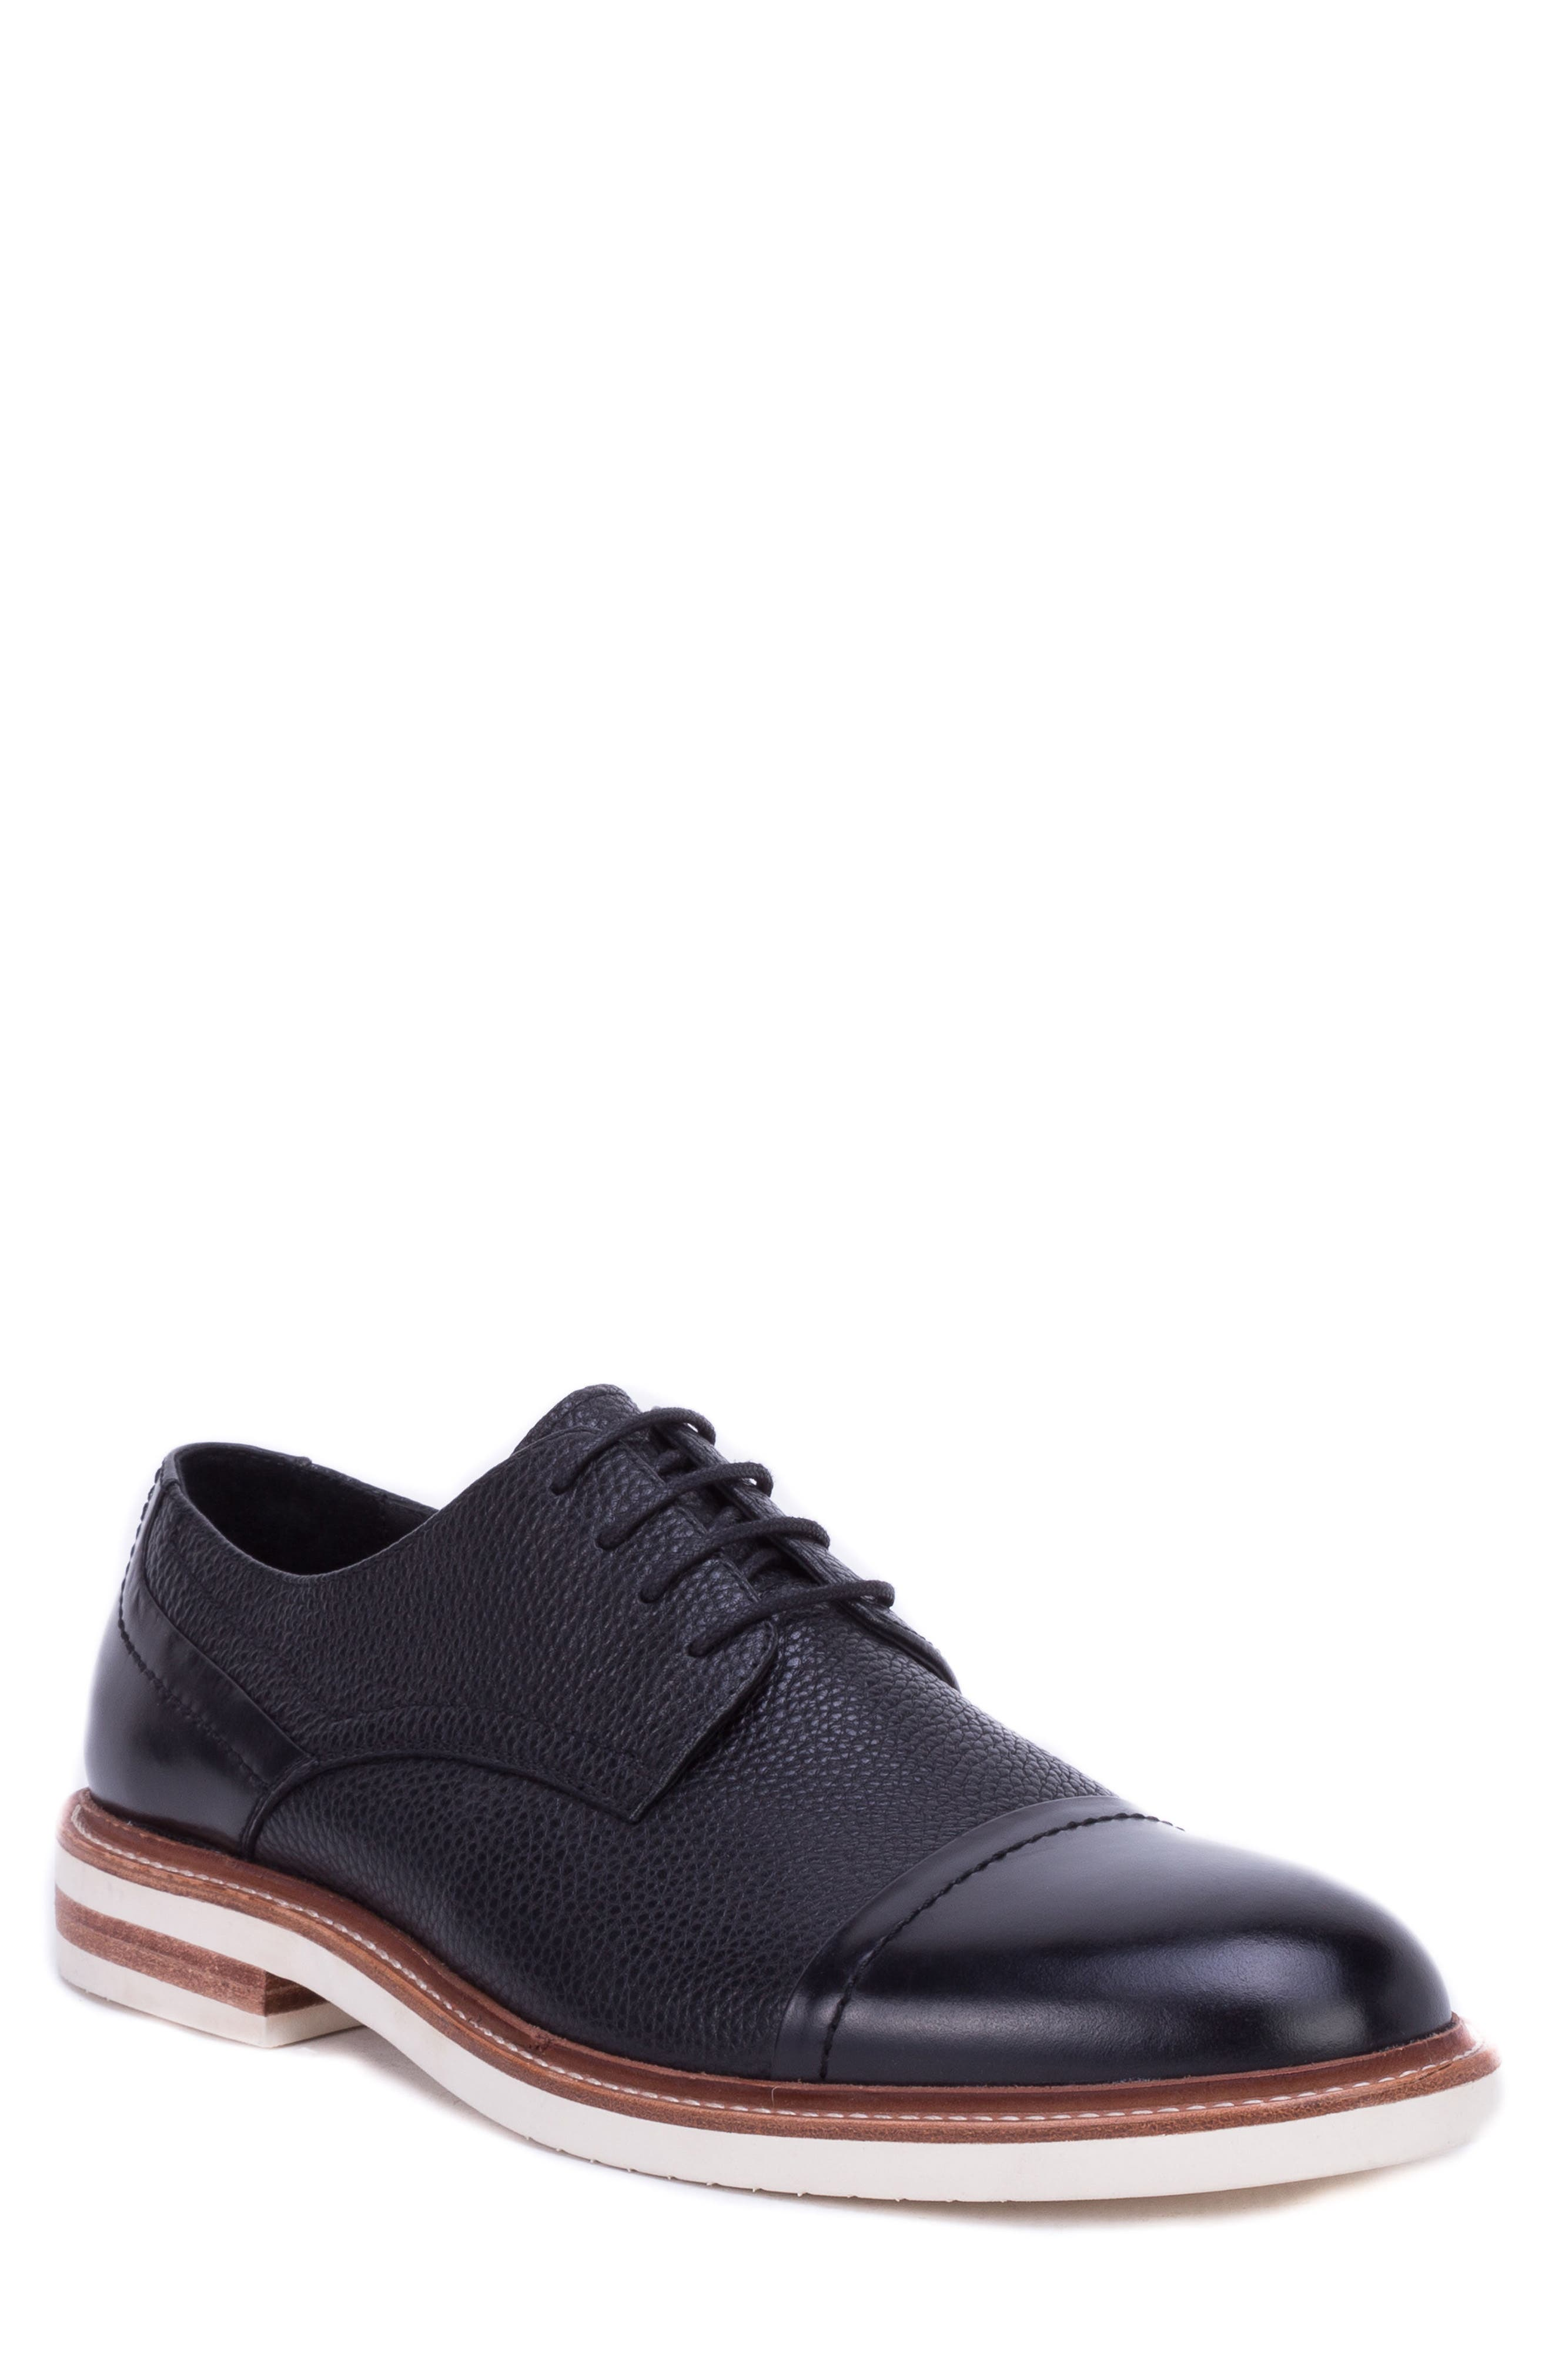 Wensley Cap Toe Derby,                         Main,                         color, BLACK LEATHER